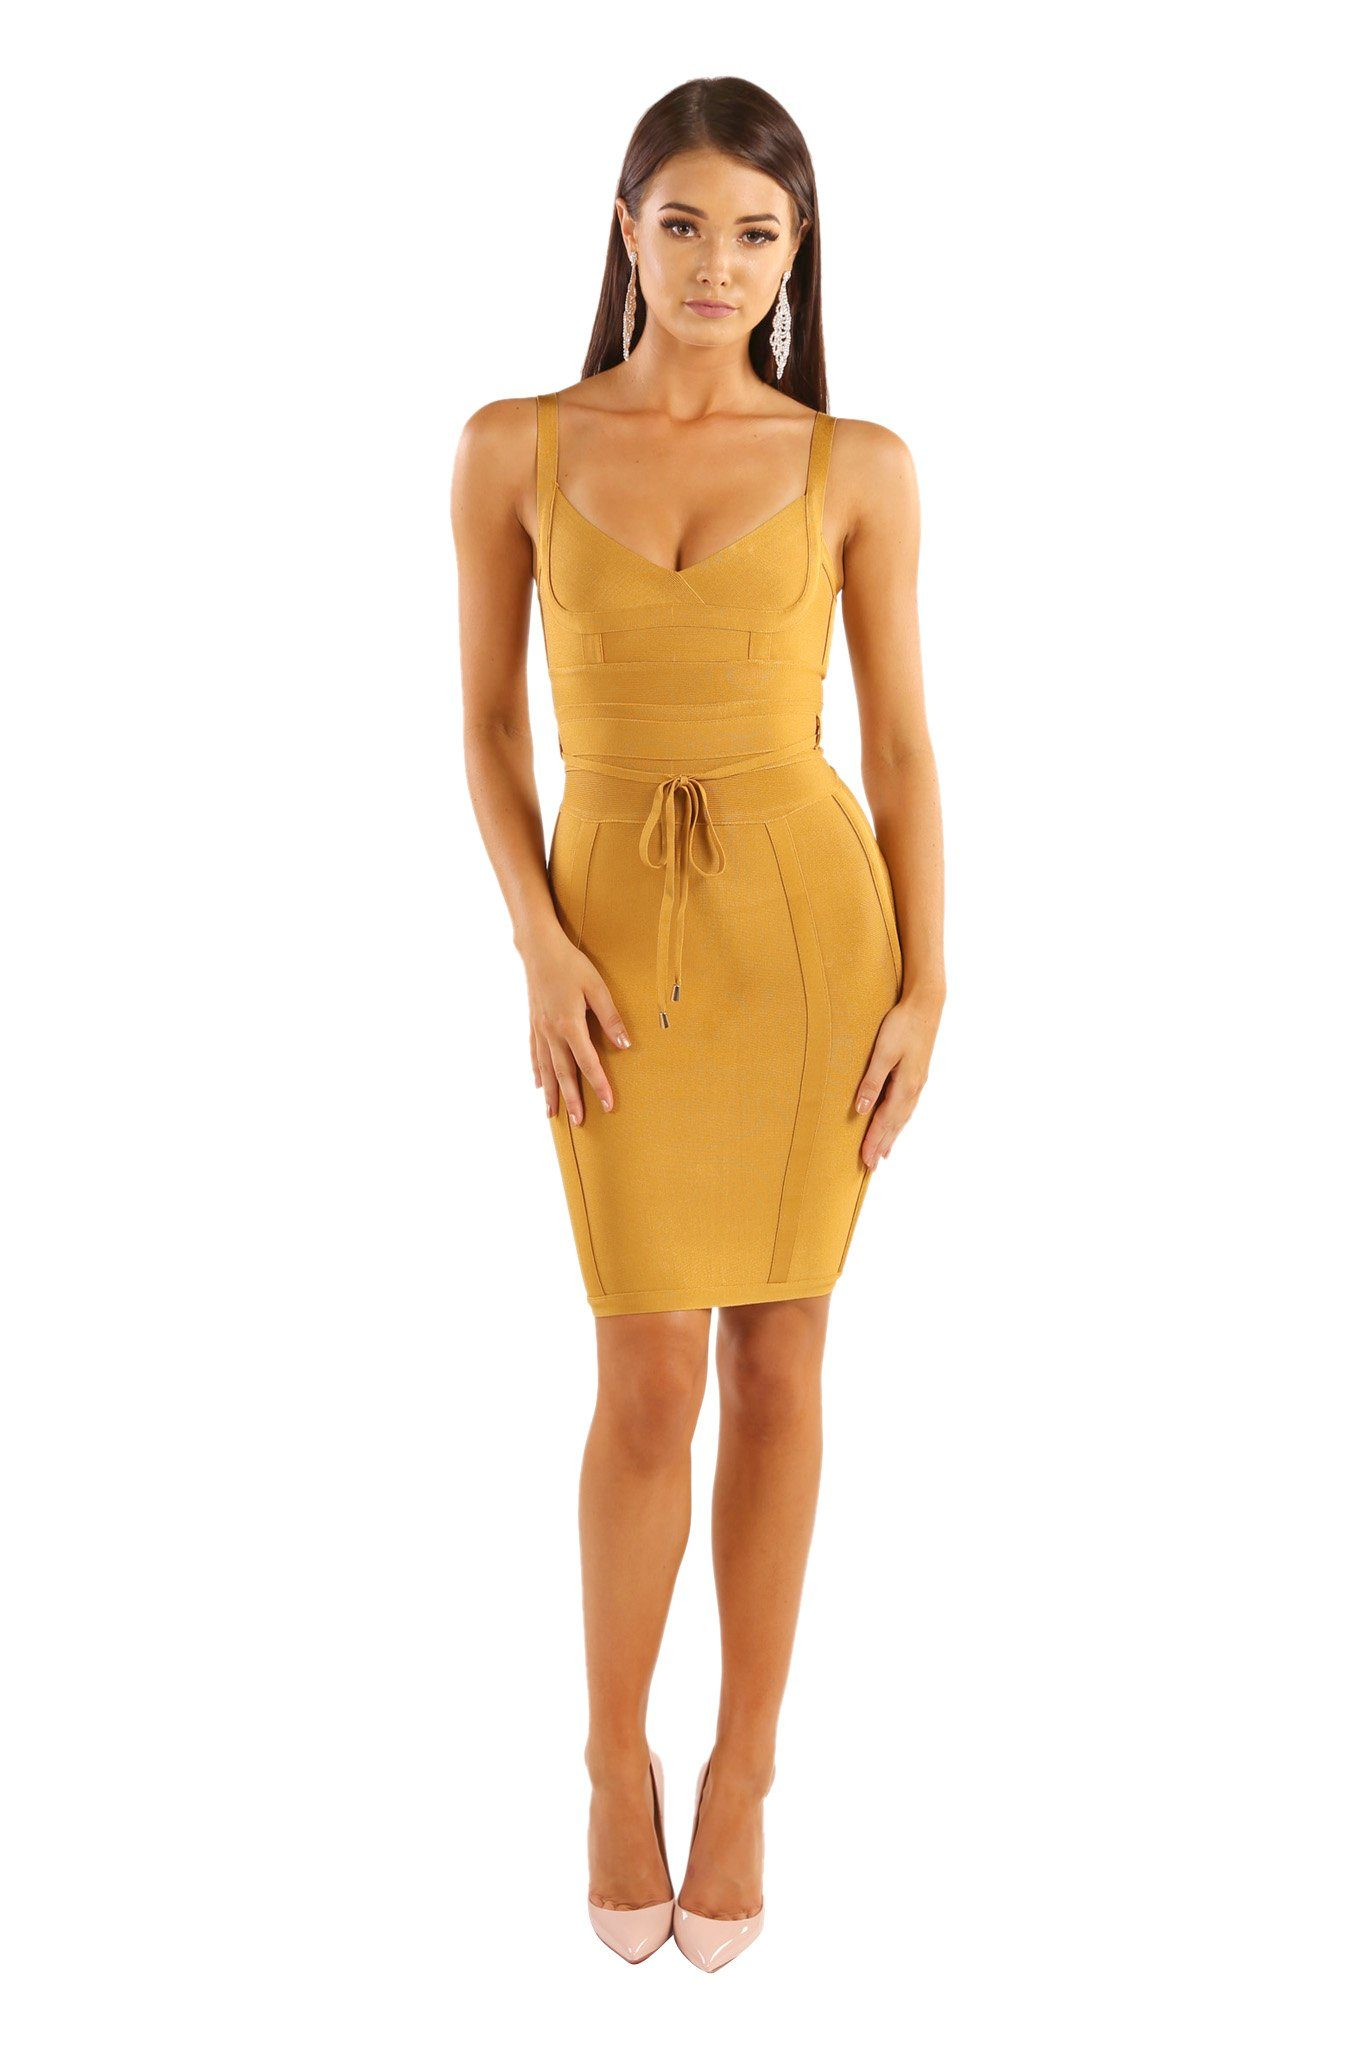 Mustard ginger colored mini sleeveless bandage dress with thin shoulder straps, thin removable belt, and full-length back zipper